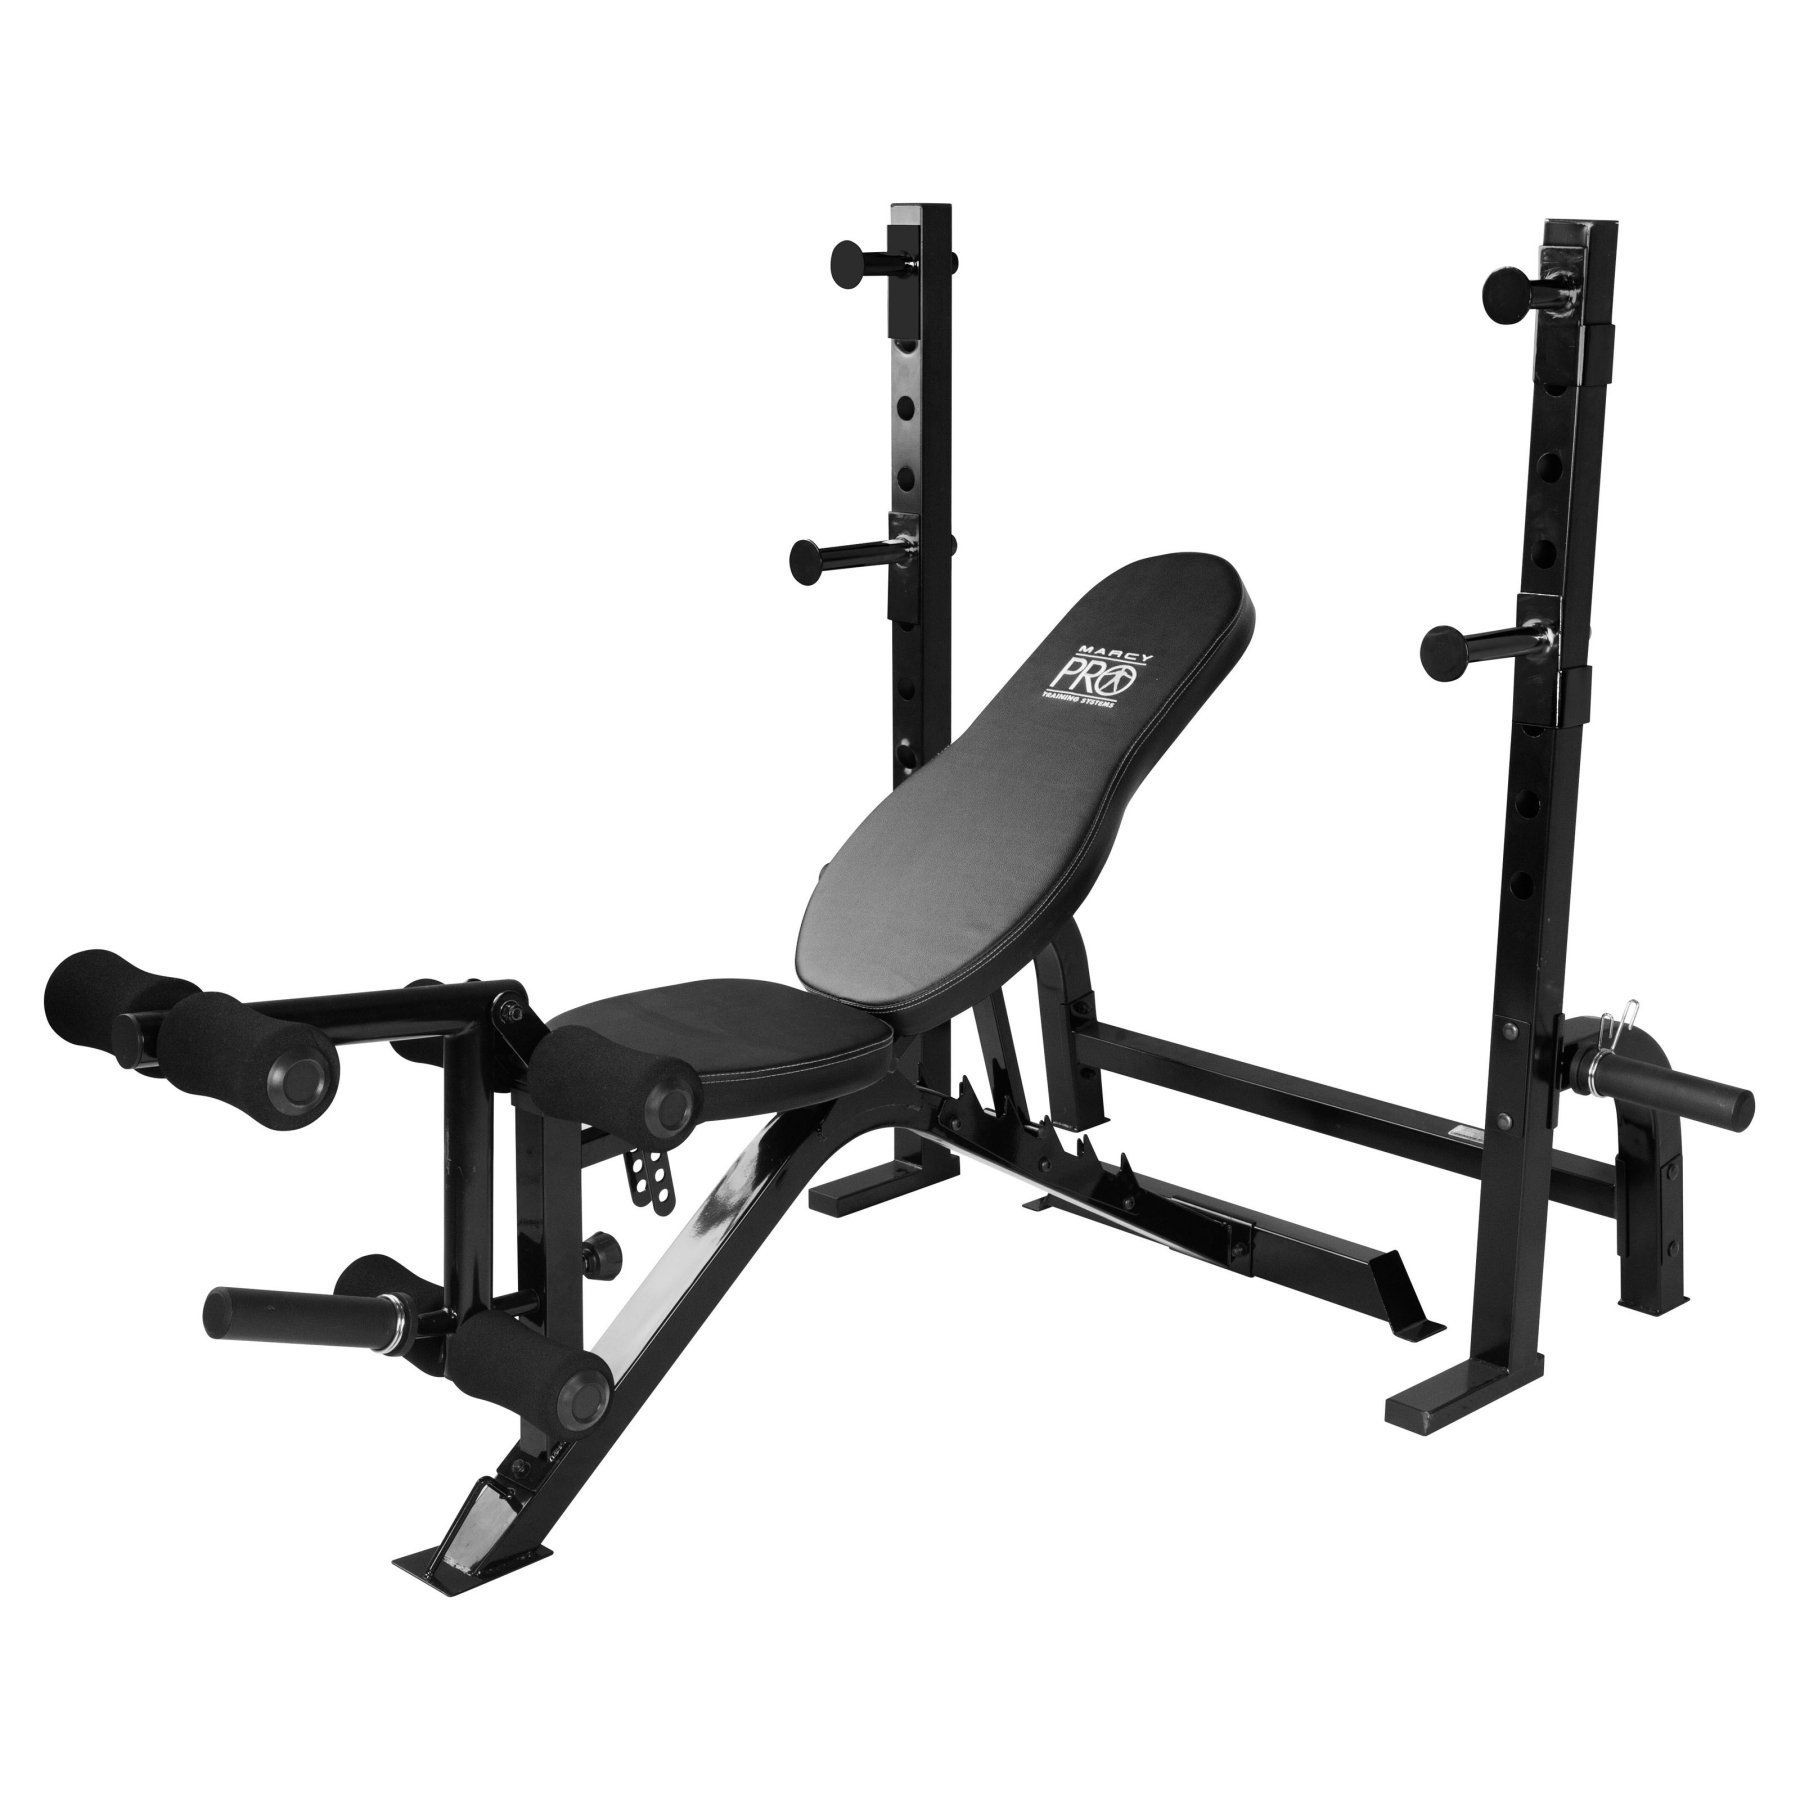 Marcy Olympic Weight Bench Pm 70210 Weight Benches Exercise Benches